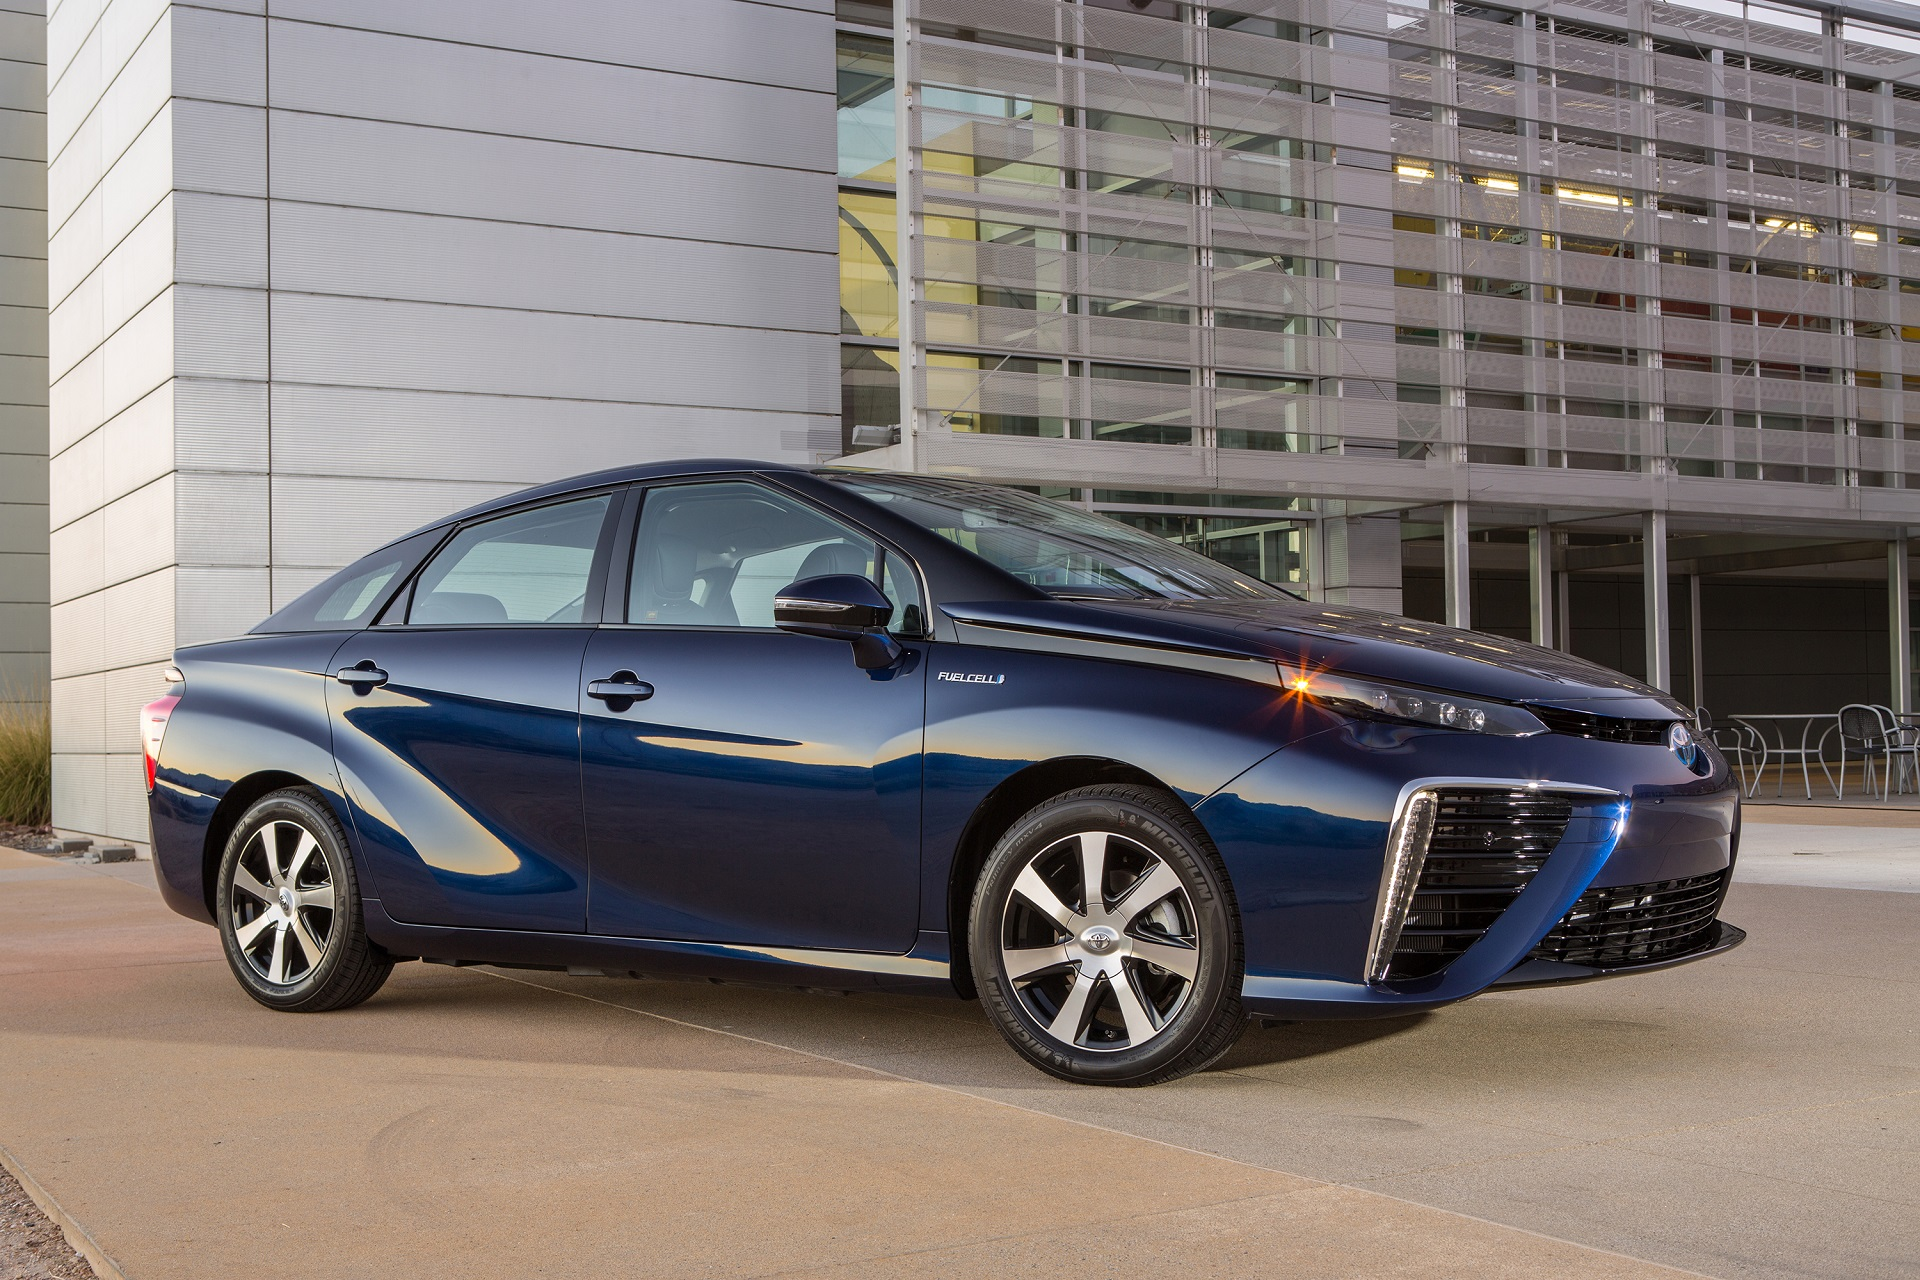 2017 Toyota Mirai Review, Ratings, Specs, Prices, and ...